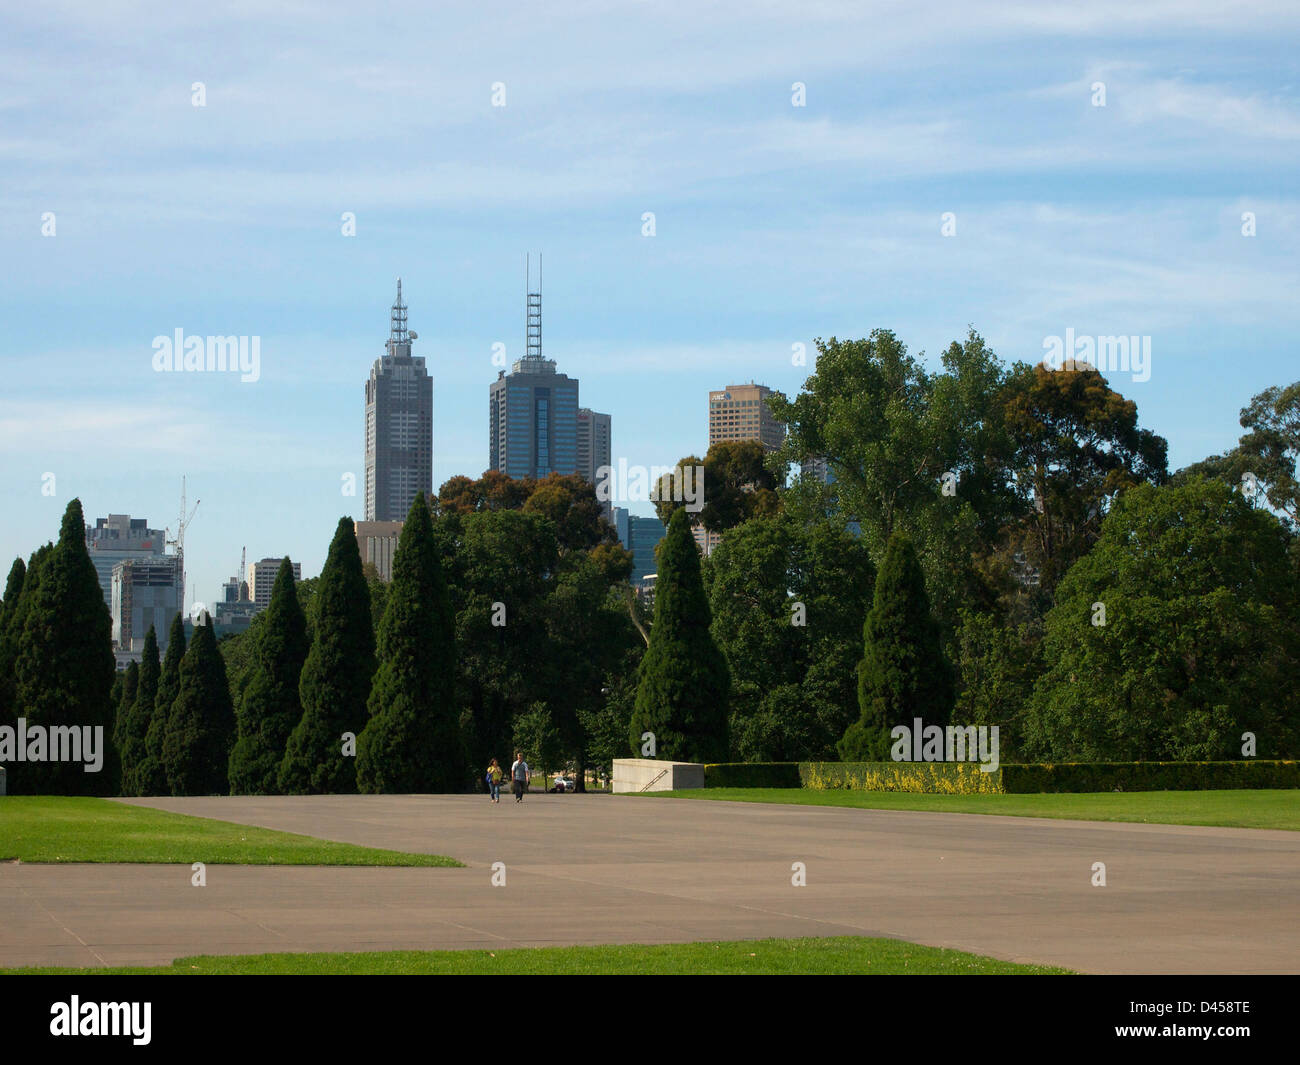 The City seen from the Shrine of Remembrance in Melbourne Australia - Stock Image